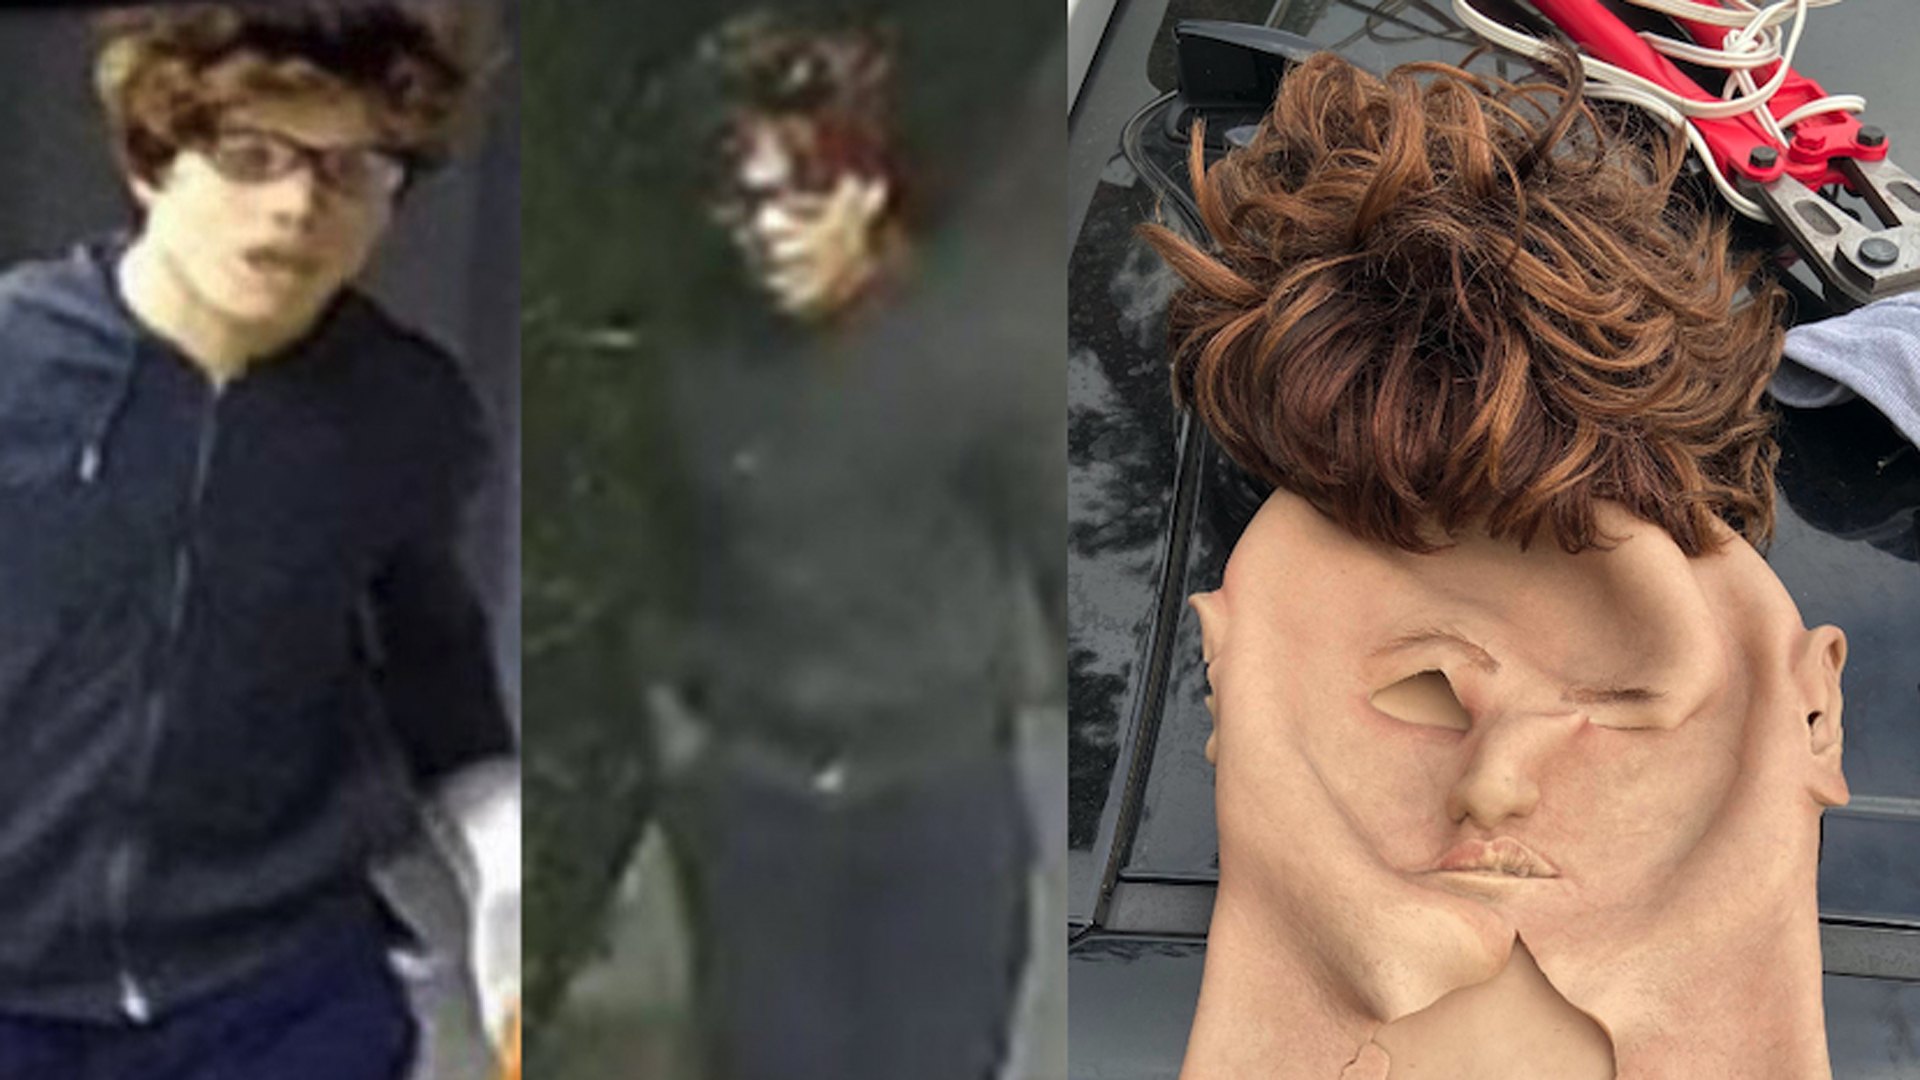 Photos of a man believed to have burglarized several homes while wearing a life-like mask is seen in photos released by the Beverly Hills Police Department on May 7, 2021.